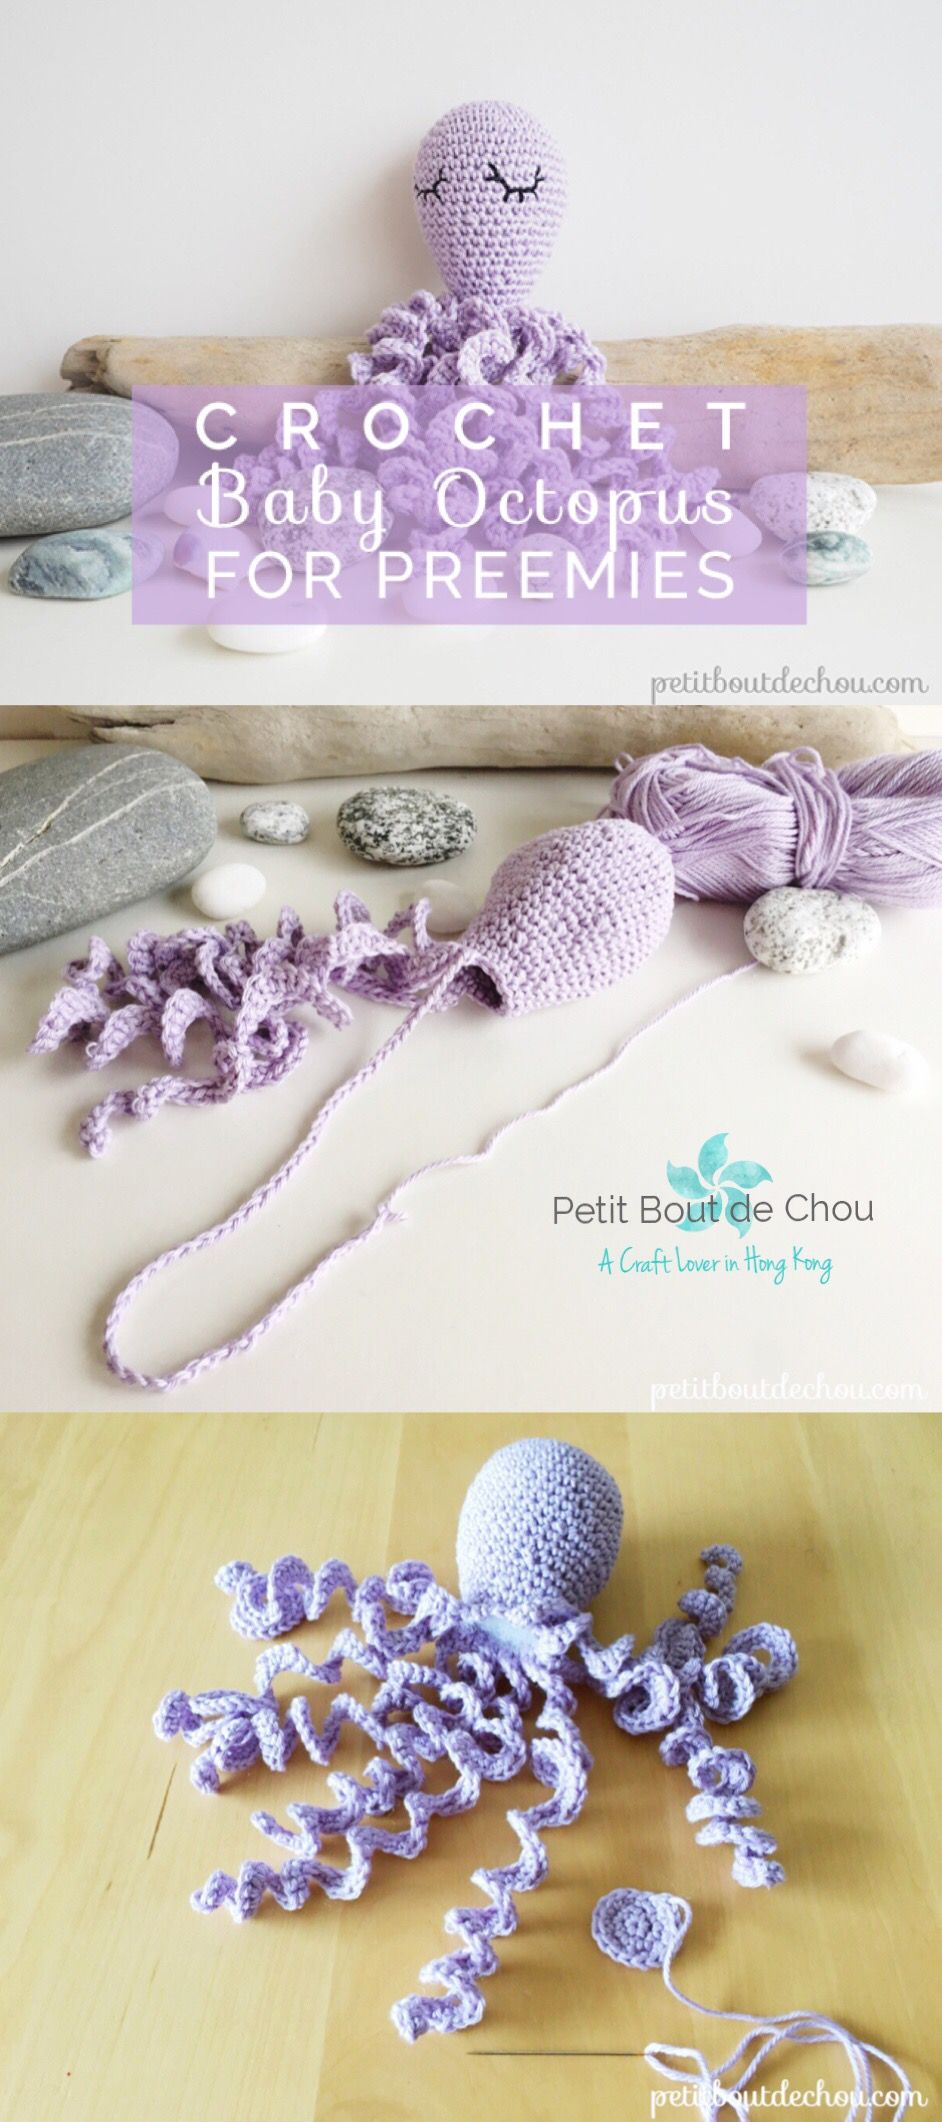 Crochet an Octopus Amigurumi for Preemies - Petit Bout de Chou